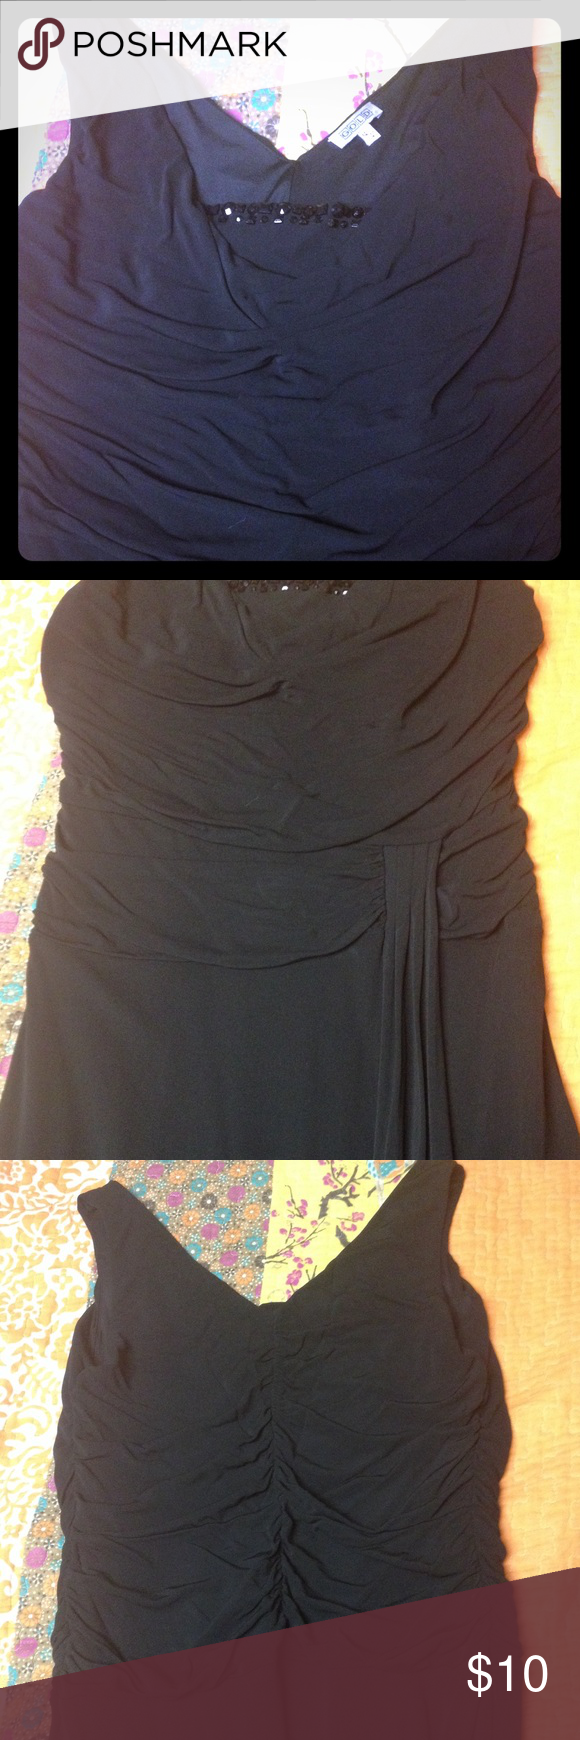 Black Cocktail Dress By the brand Gold. Very comfortable black dress. Small slit in front. MIDI length. 100% viscose. GOLD Dresses Midi